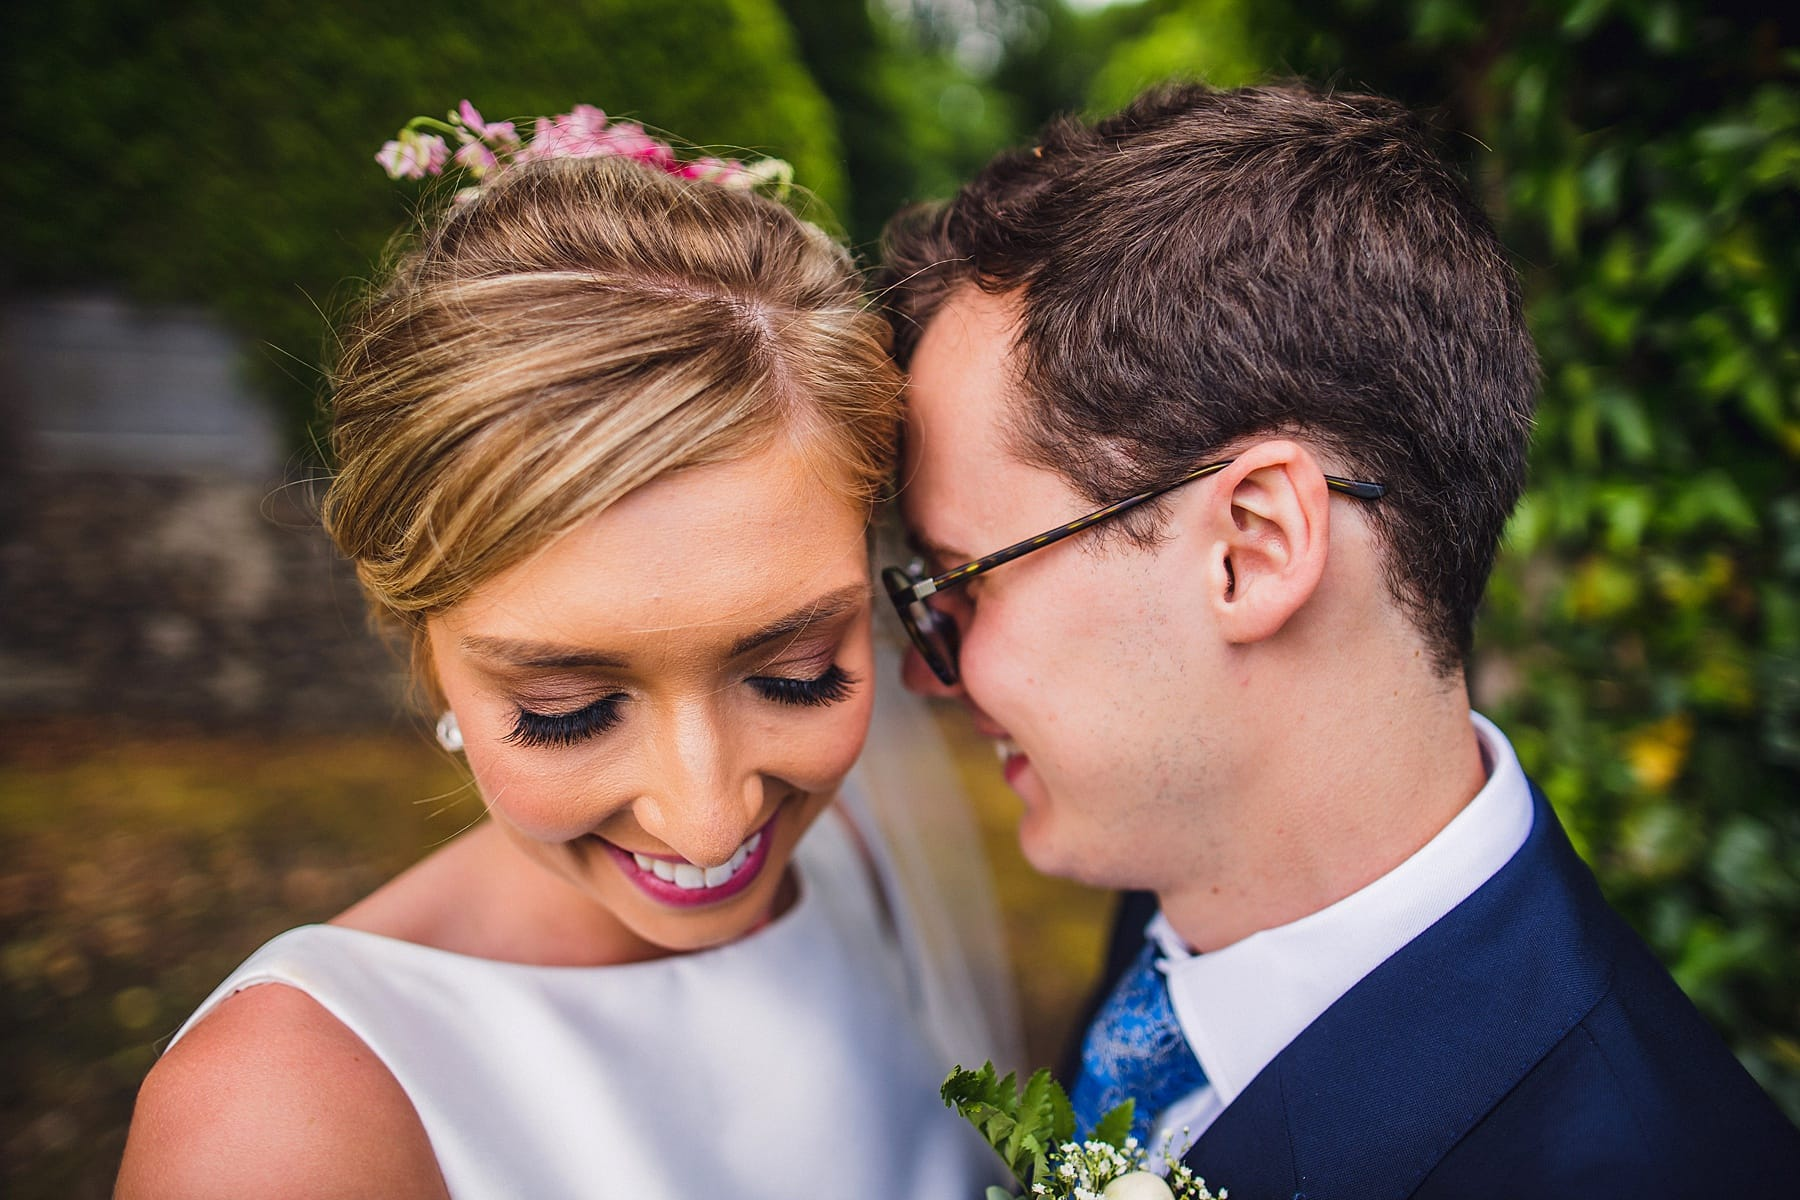 ireland wedding photographer,langton house hotel,crieff hotel,dalduff farm,ivory pavilion,luttrelstown castle wedding,tinakilly house wedding,portrush harbour wedding,